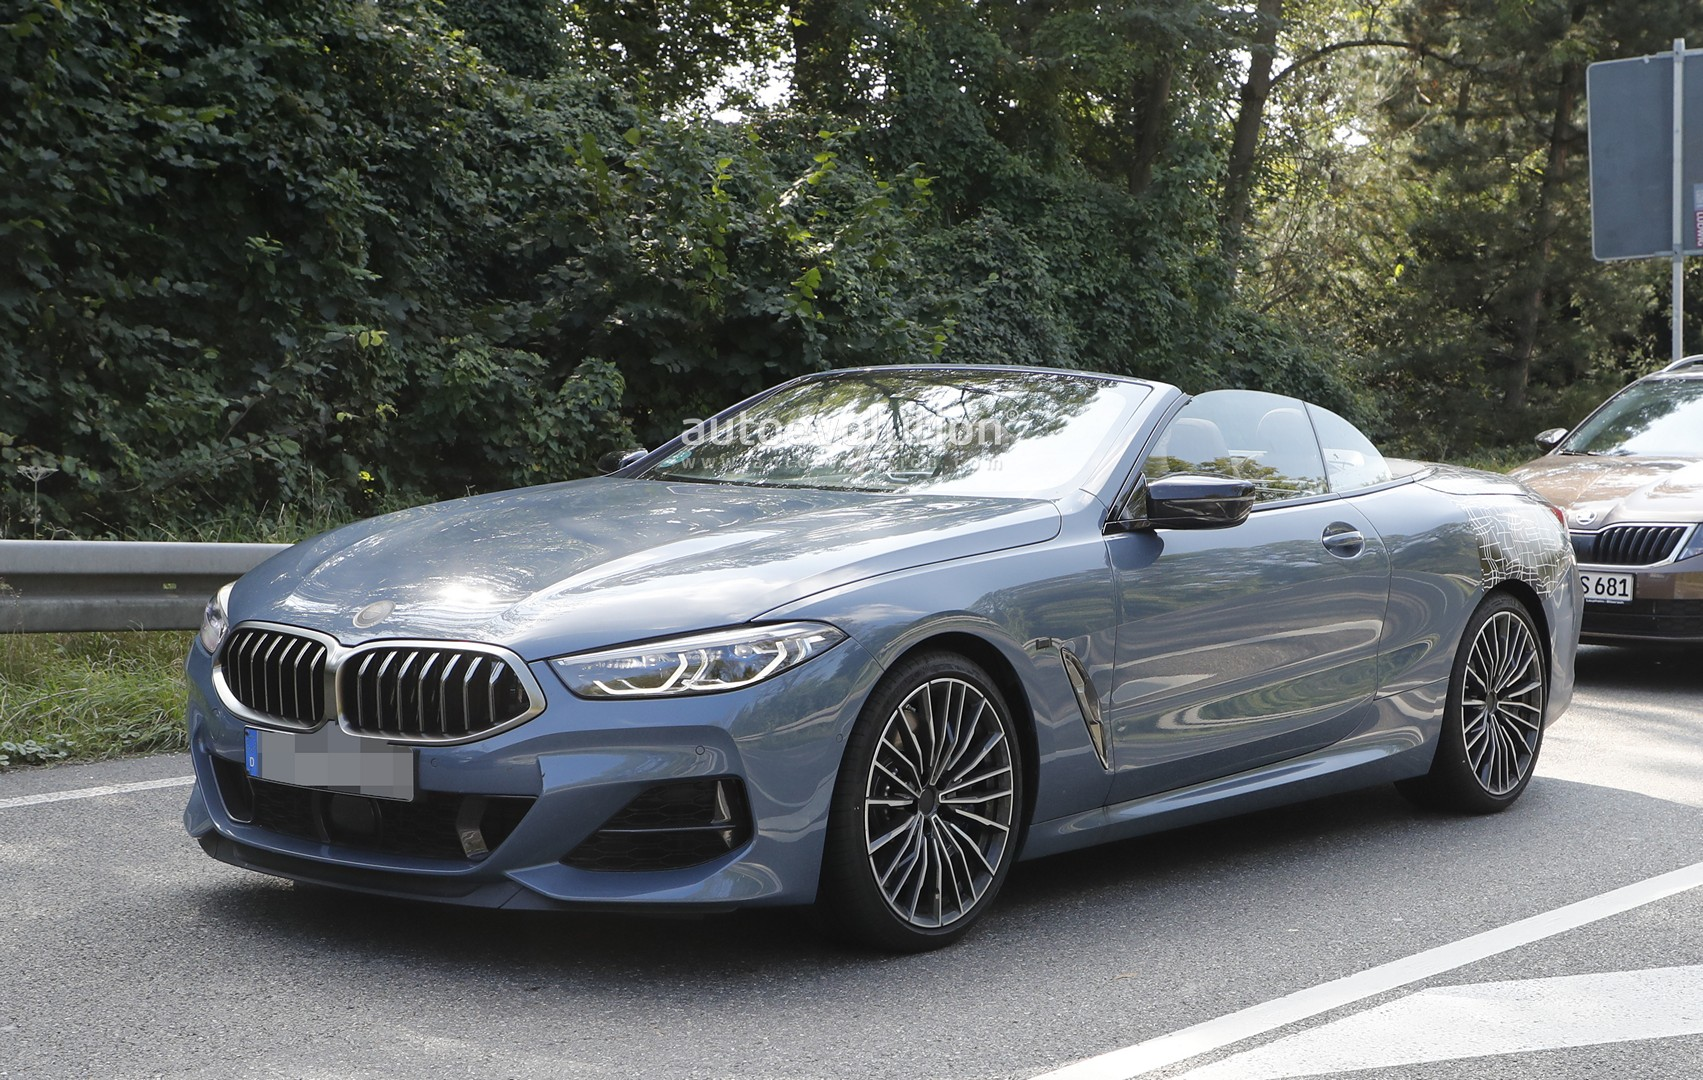 New Bmw 8 Series Convertible M850i Completely Revealed By Latest